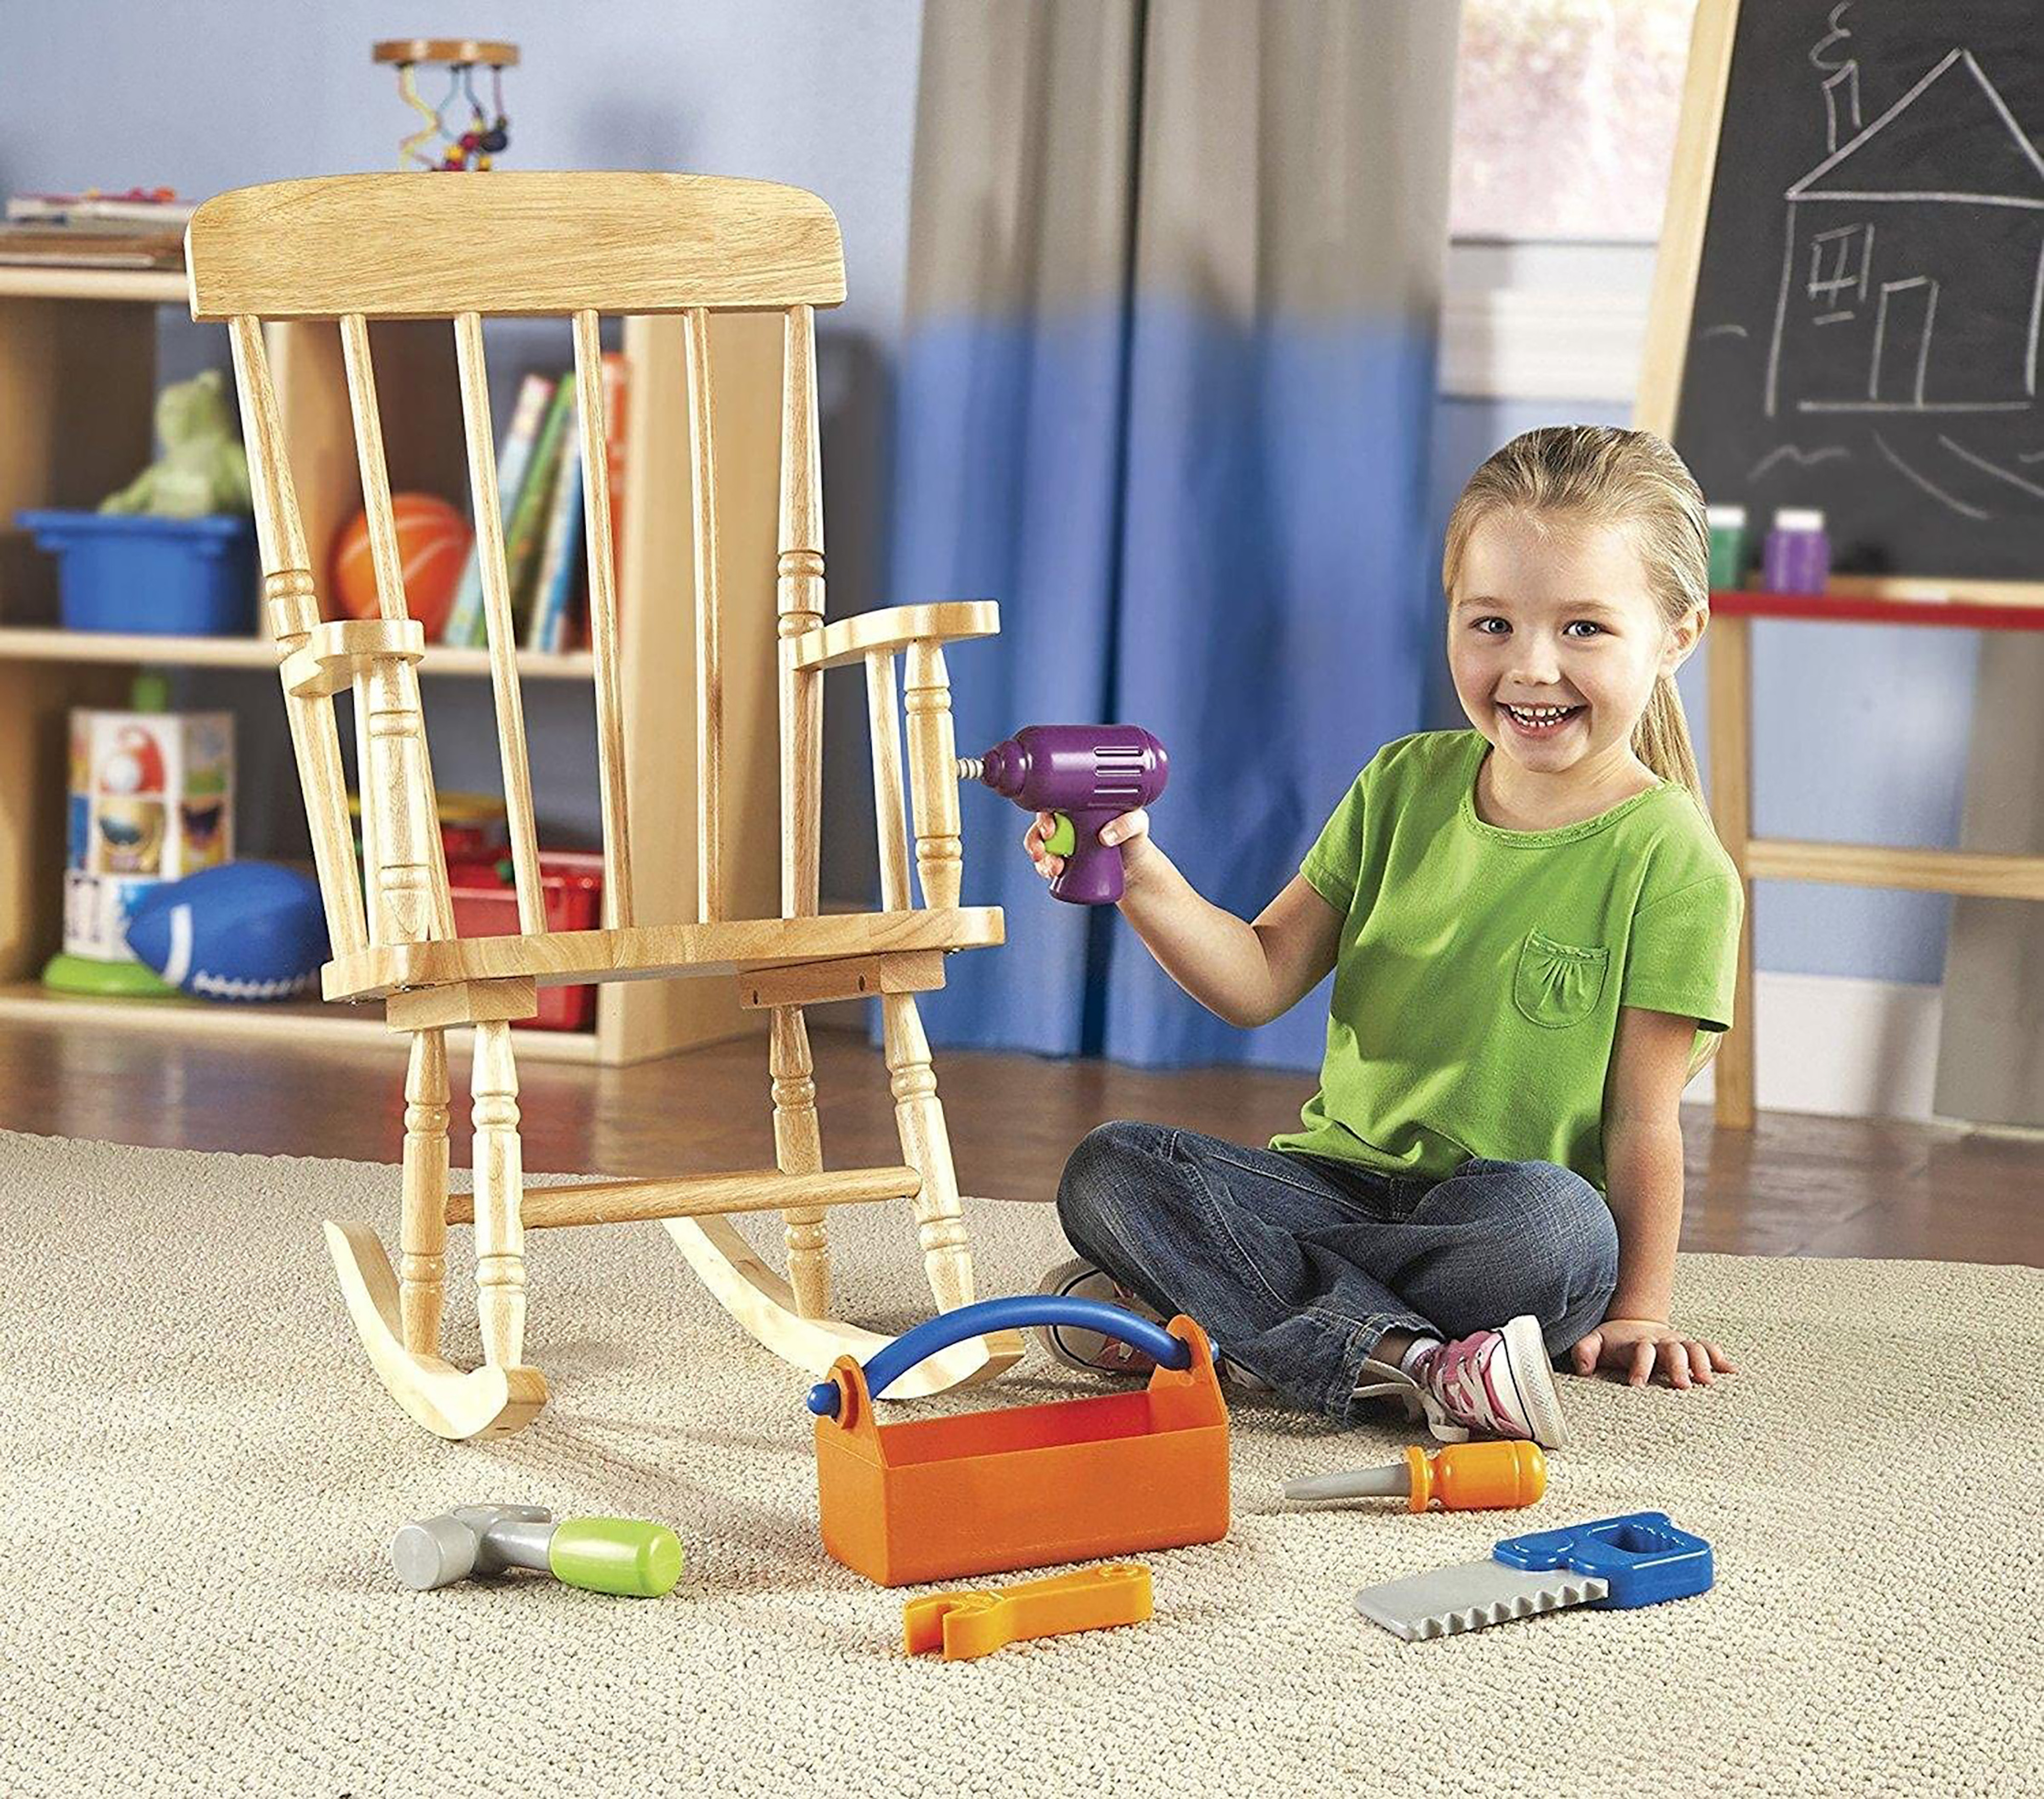 Kid Playing With Kid-Friendly Tools